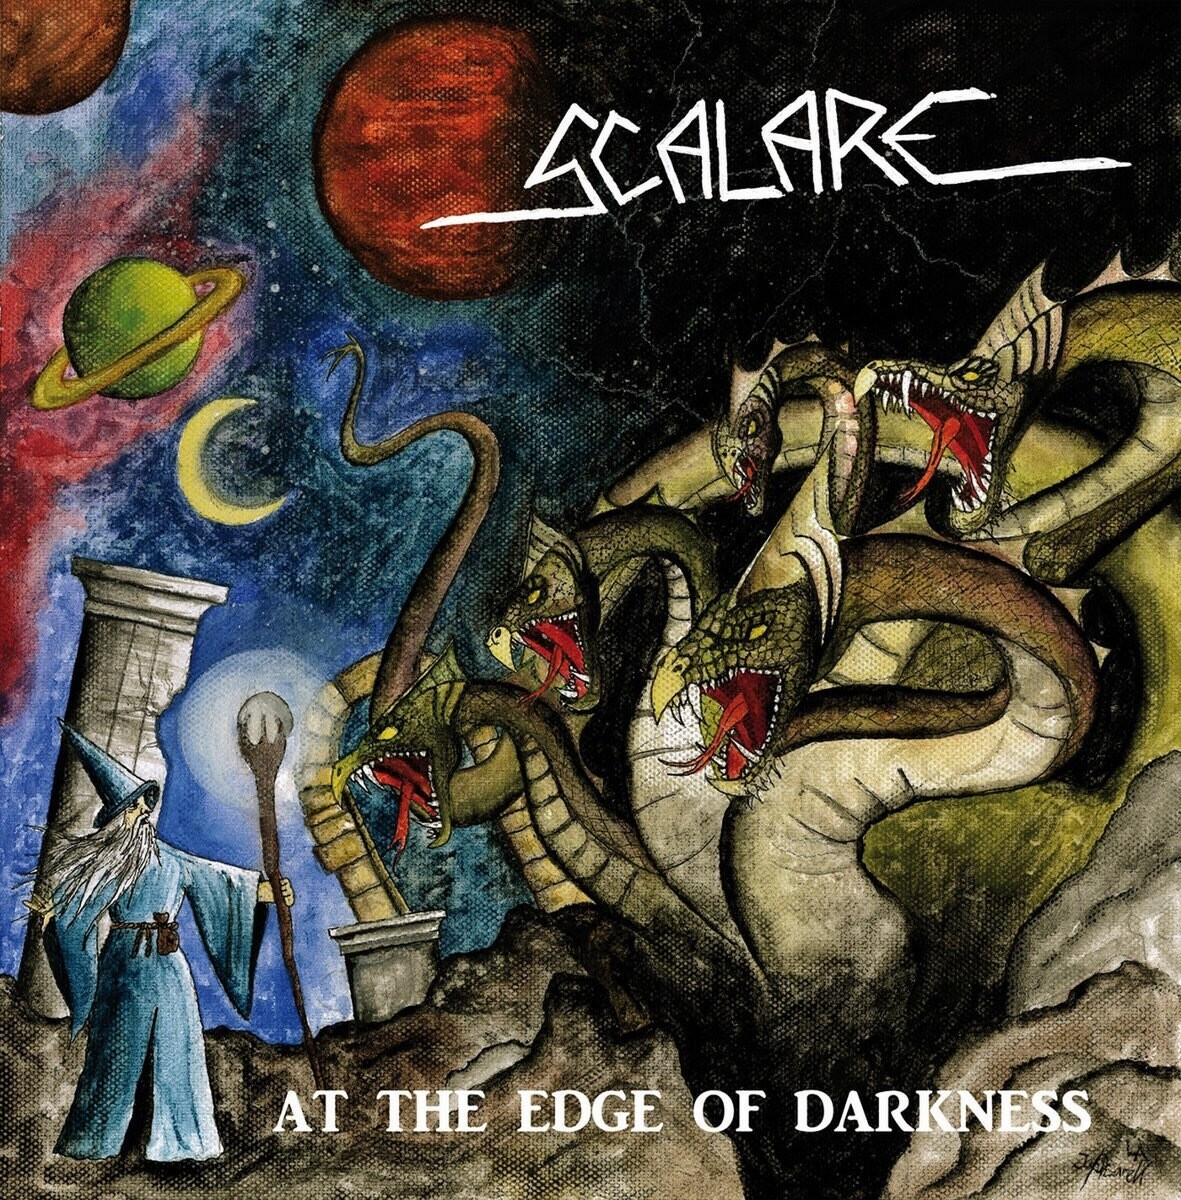 SCALARE - At the edge of darkness LP/CD